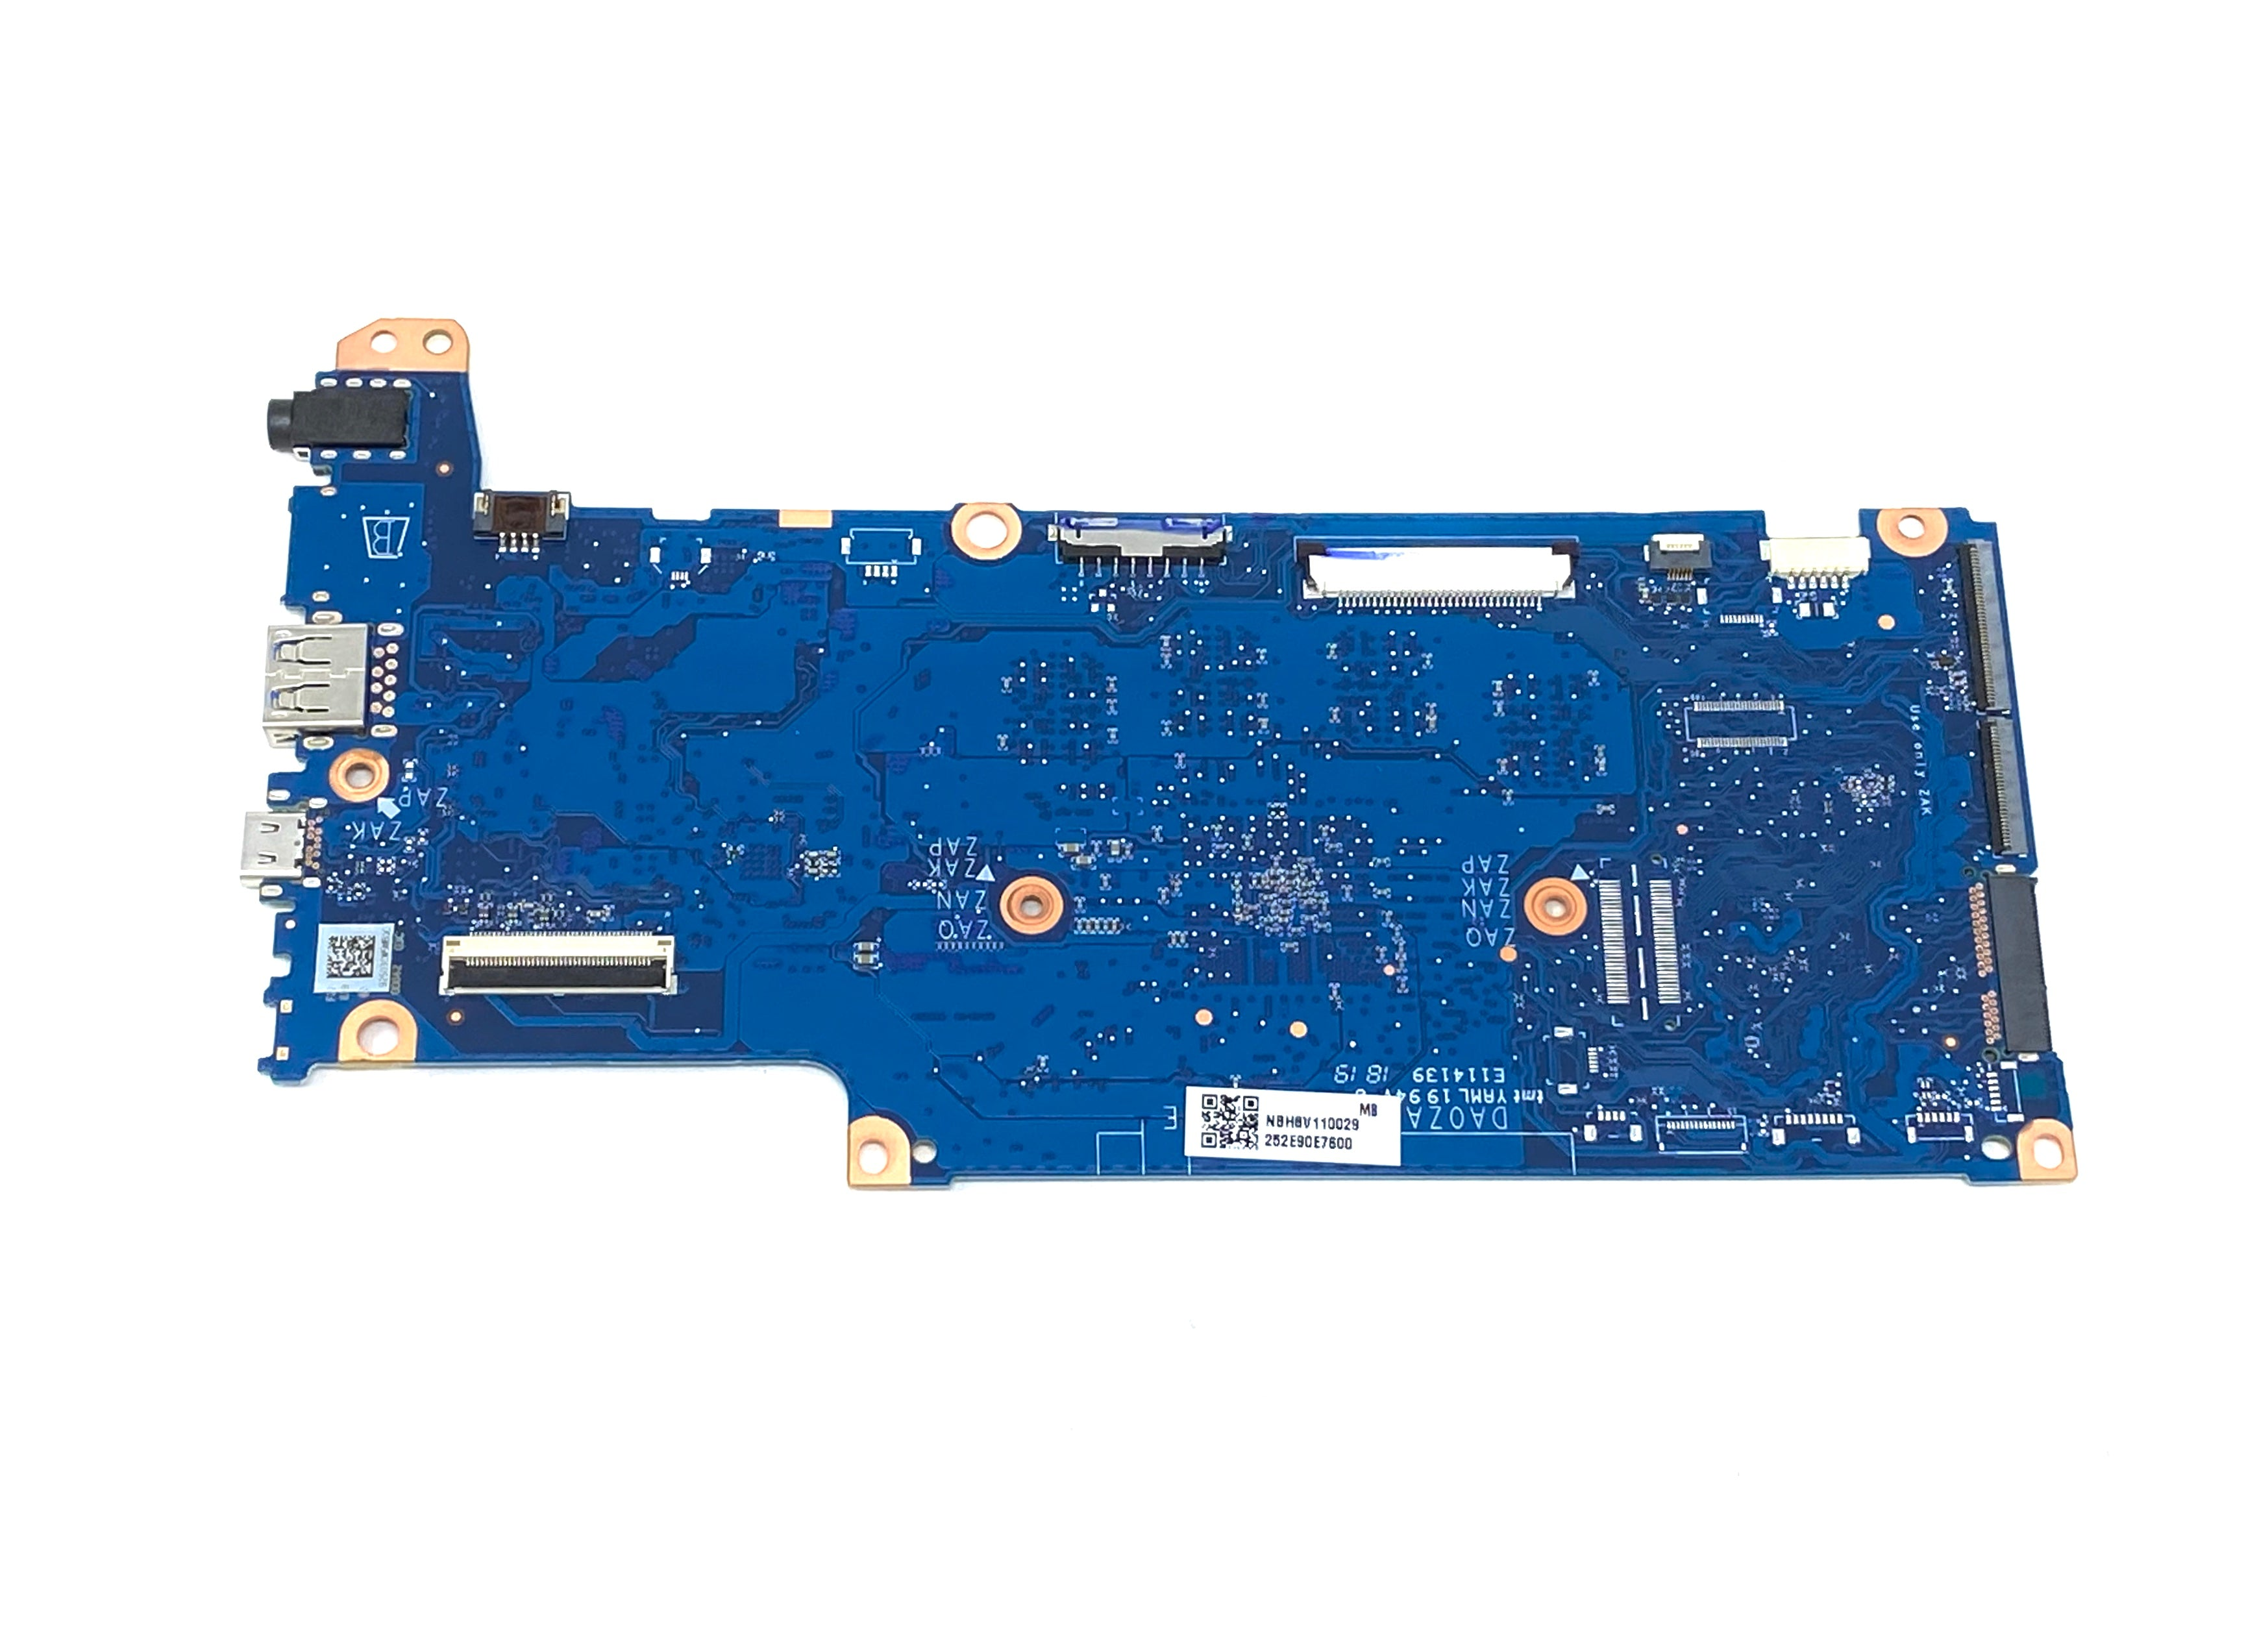 Acer Chromebook 311 C733 Motherboard N4000/4GB/32GB (Non Touch) - NB.H8V11.002 / DA0ZAKMB6E0